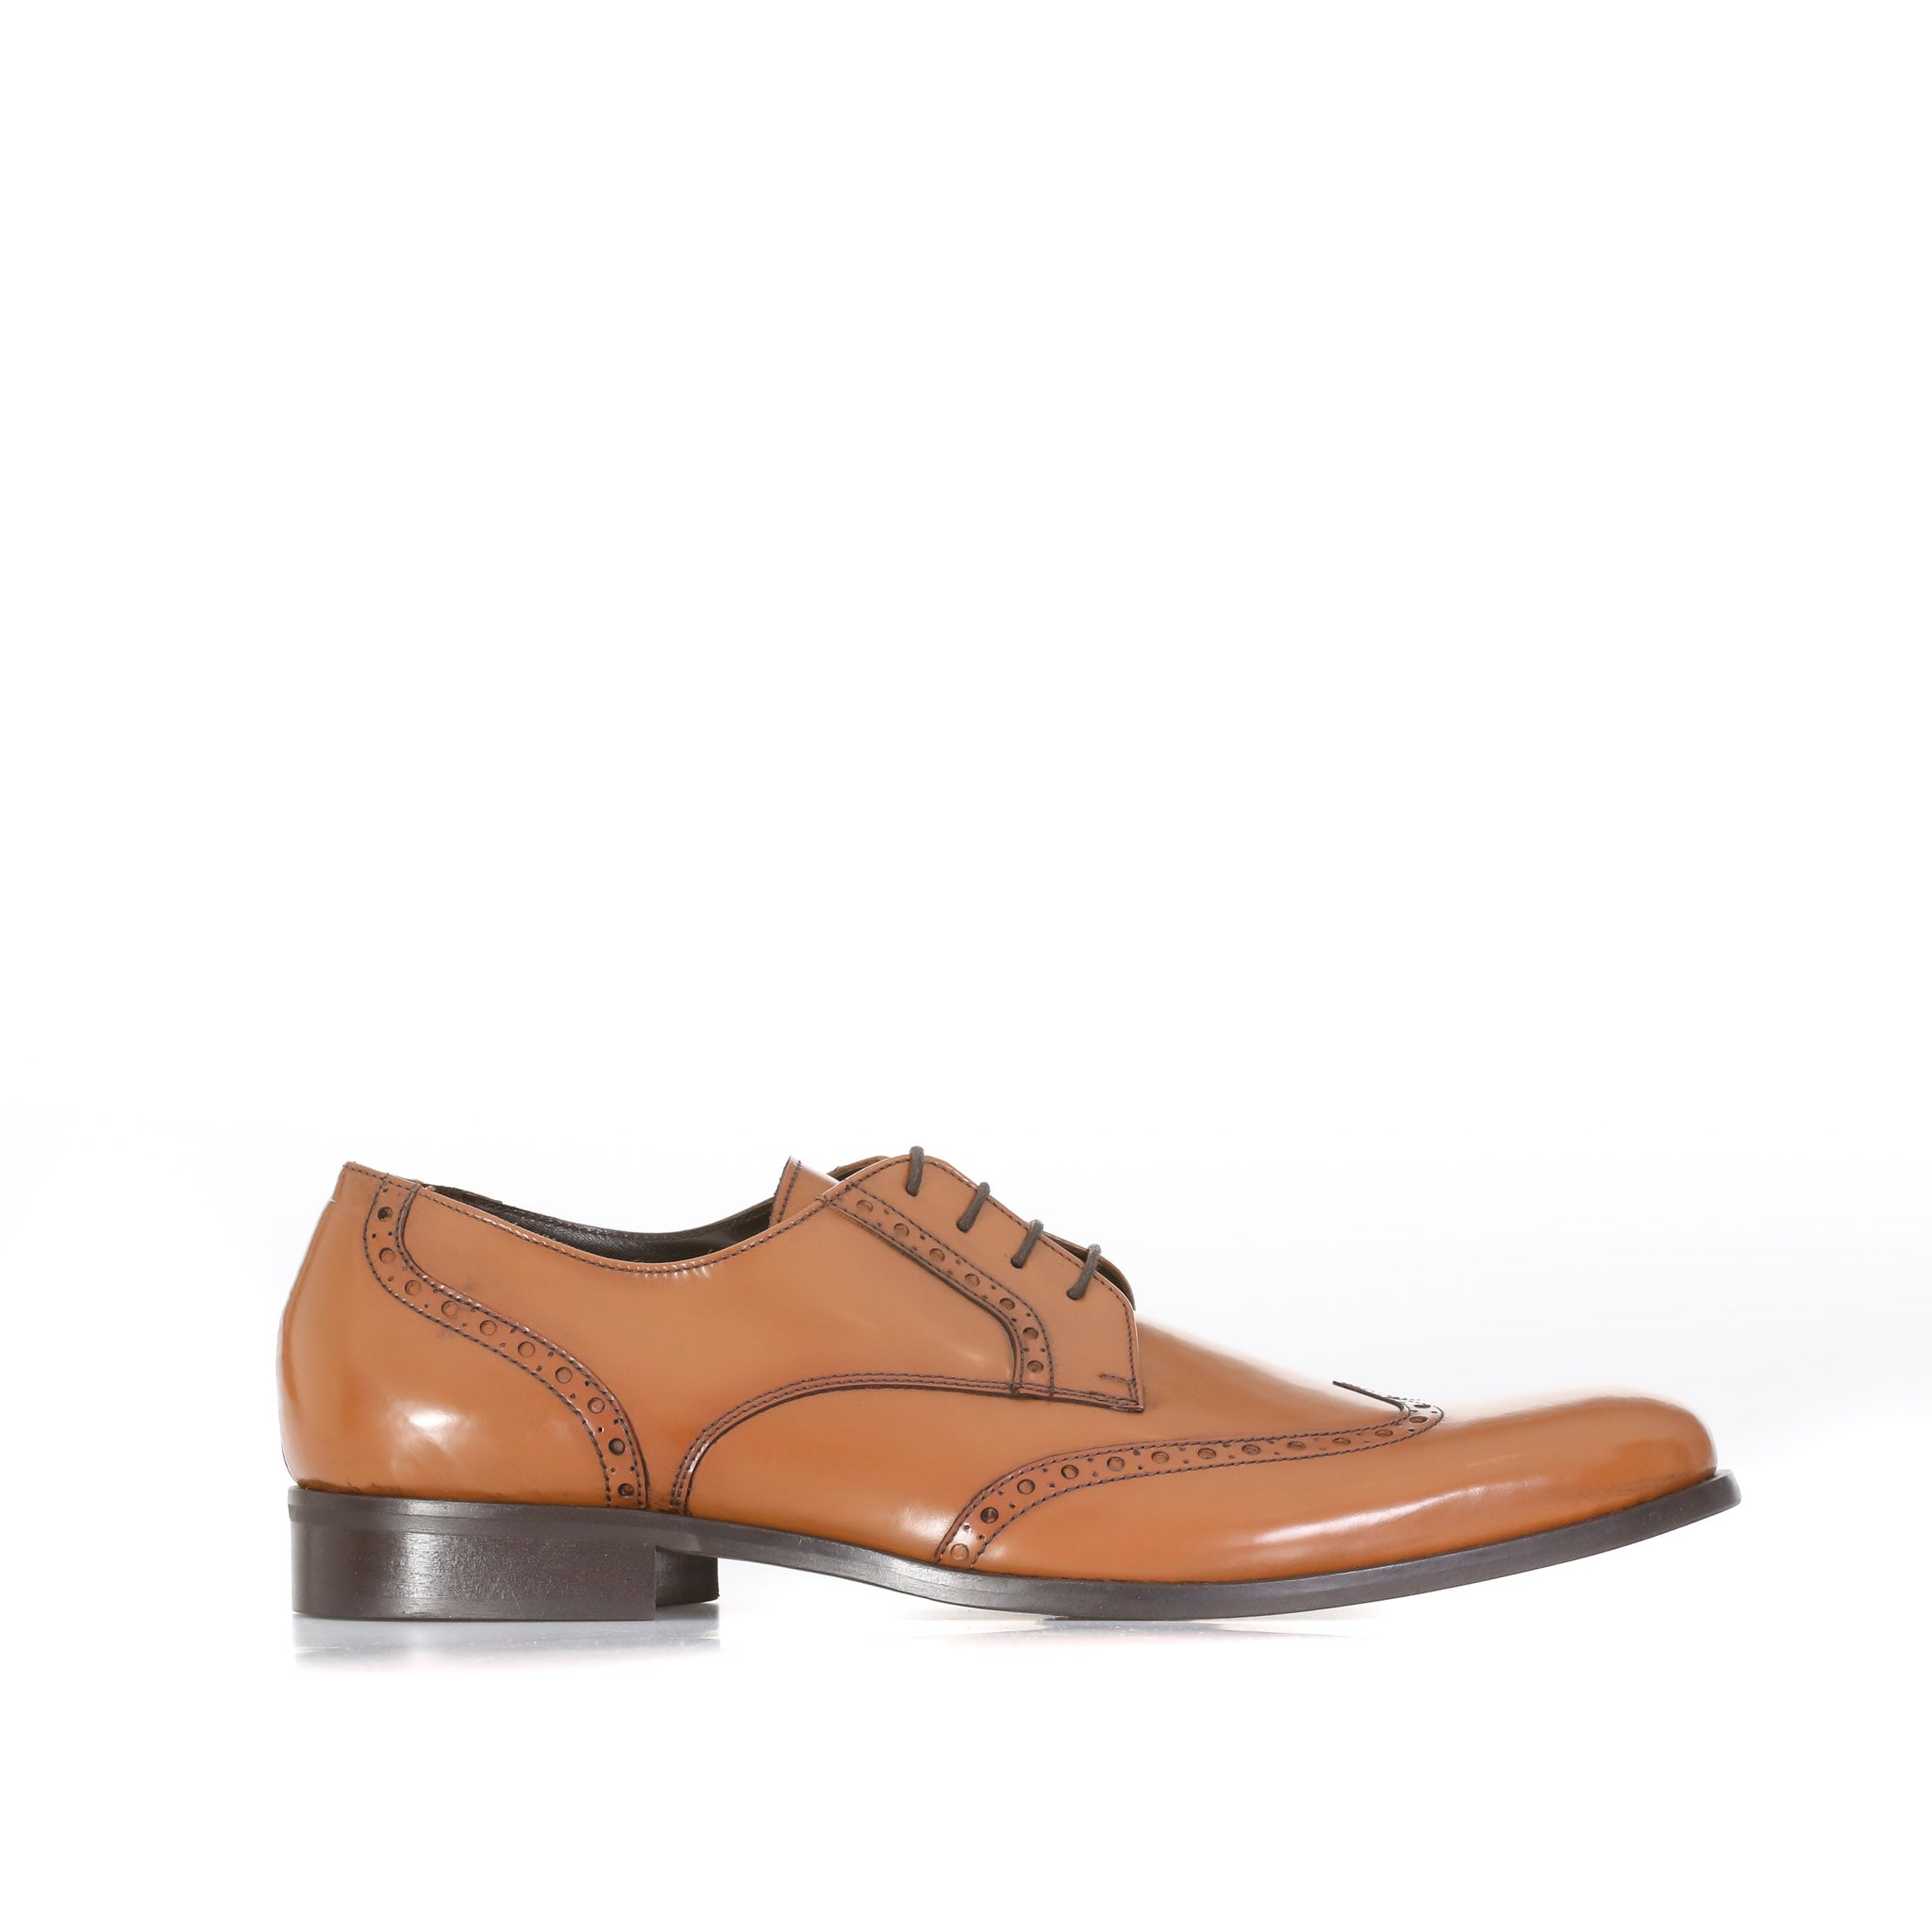 A. Testoni Leather Oxford Shoes